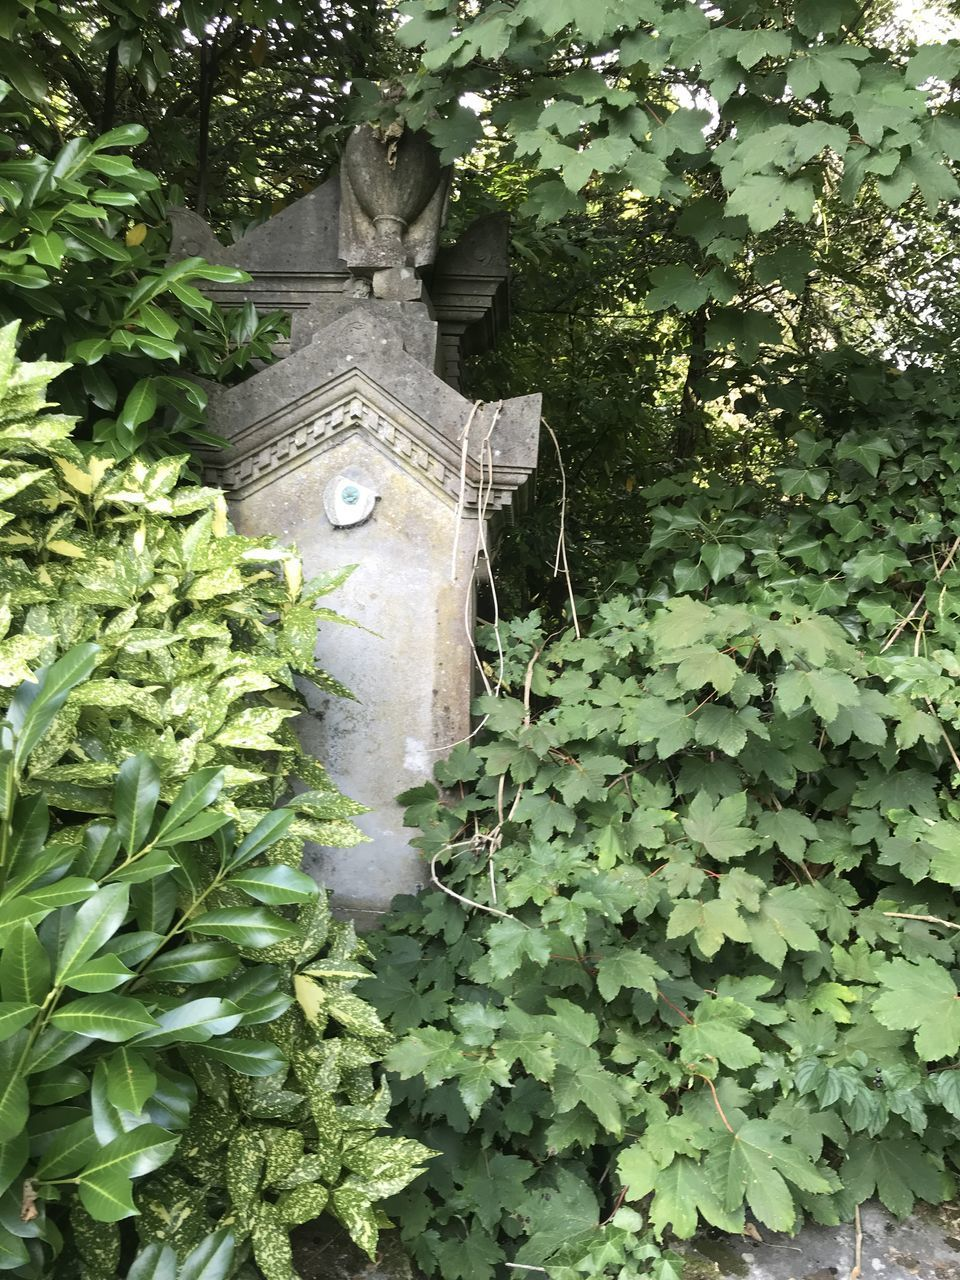 CLOSE-UP OF STATUE AGAINST TREES